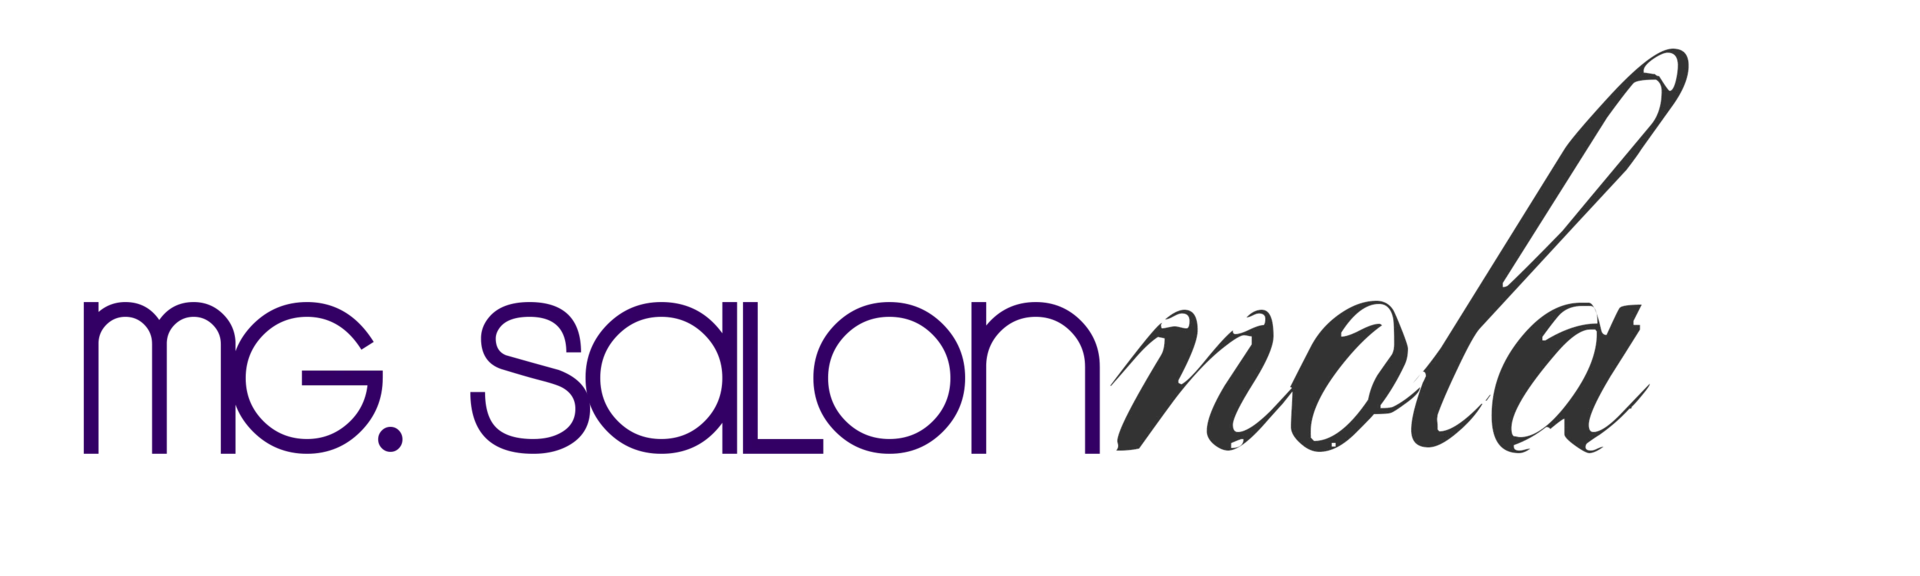 MG Salon NOLA, a full service hair salon.